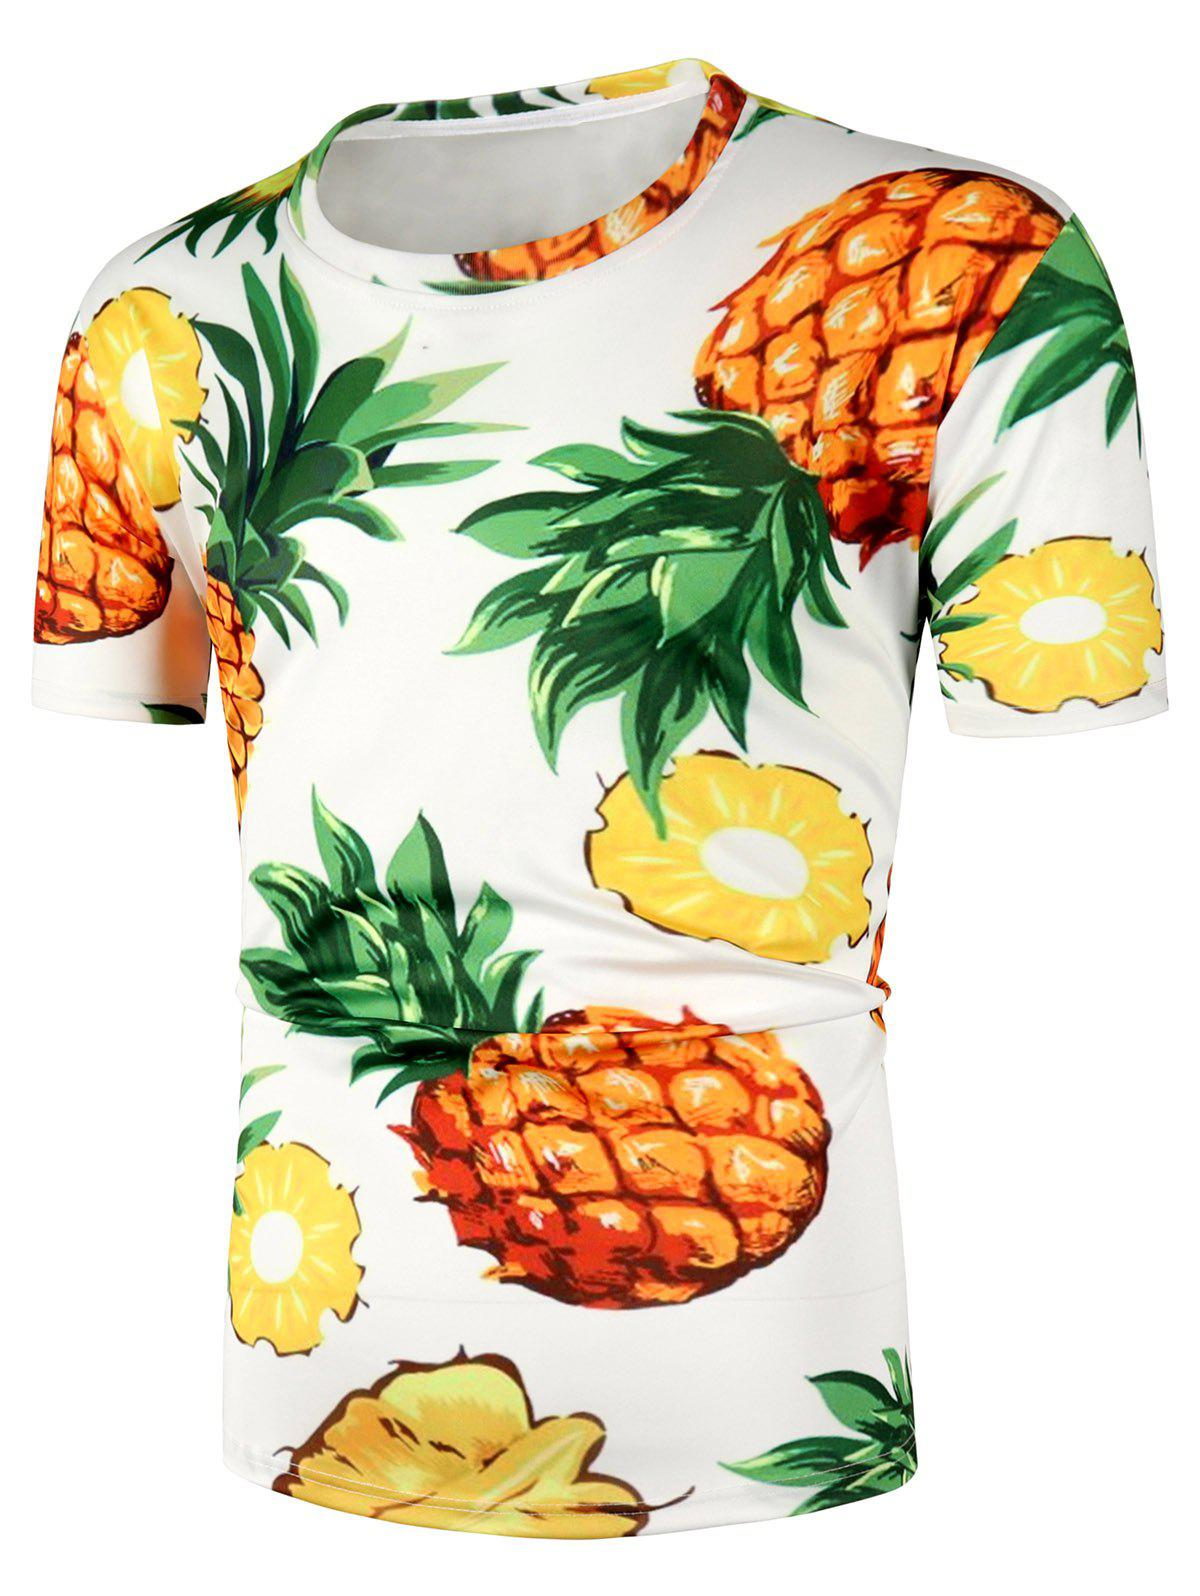 da58eaac24cd 27% OFF] Pineapple Pattern Short Sleeve T Shirt | Rosegal